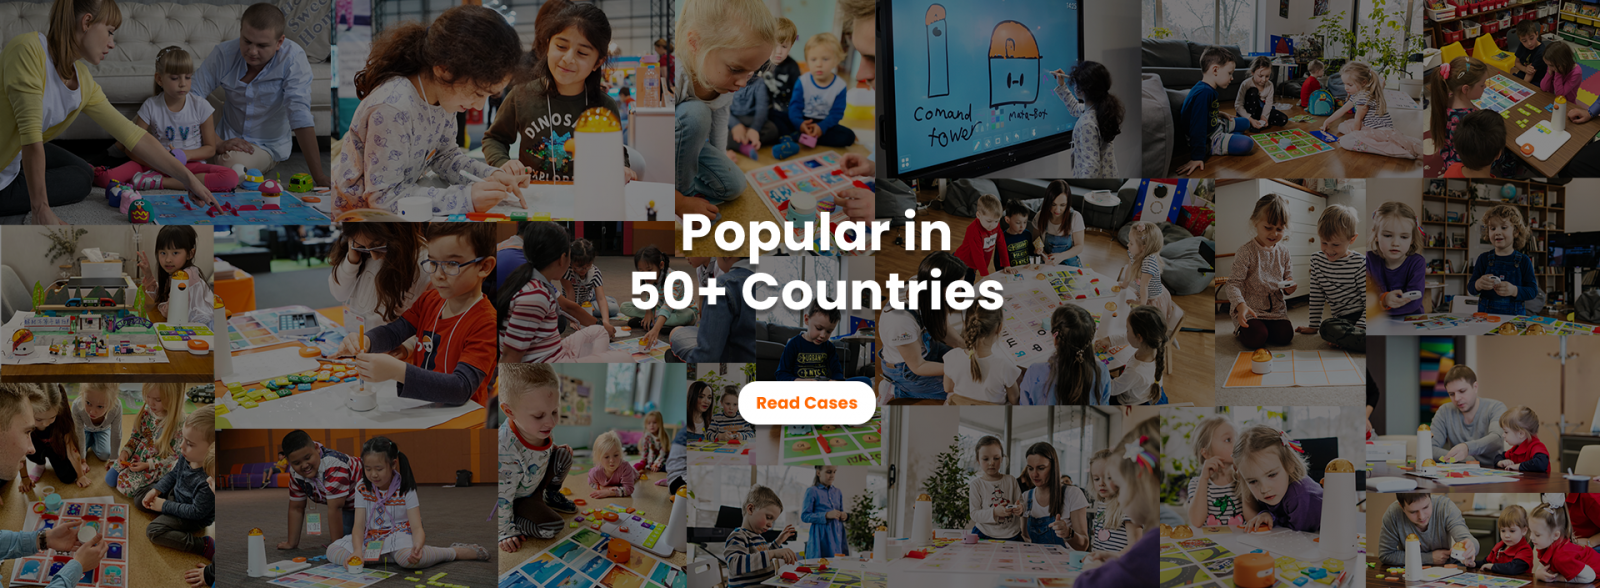 Matatalab Robots is Popular in 50+ Countries - Robotics for Kids - Matatalab